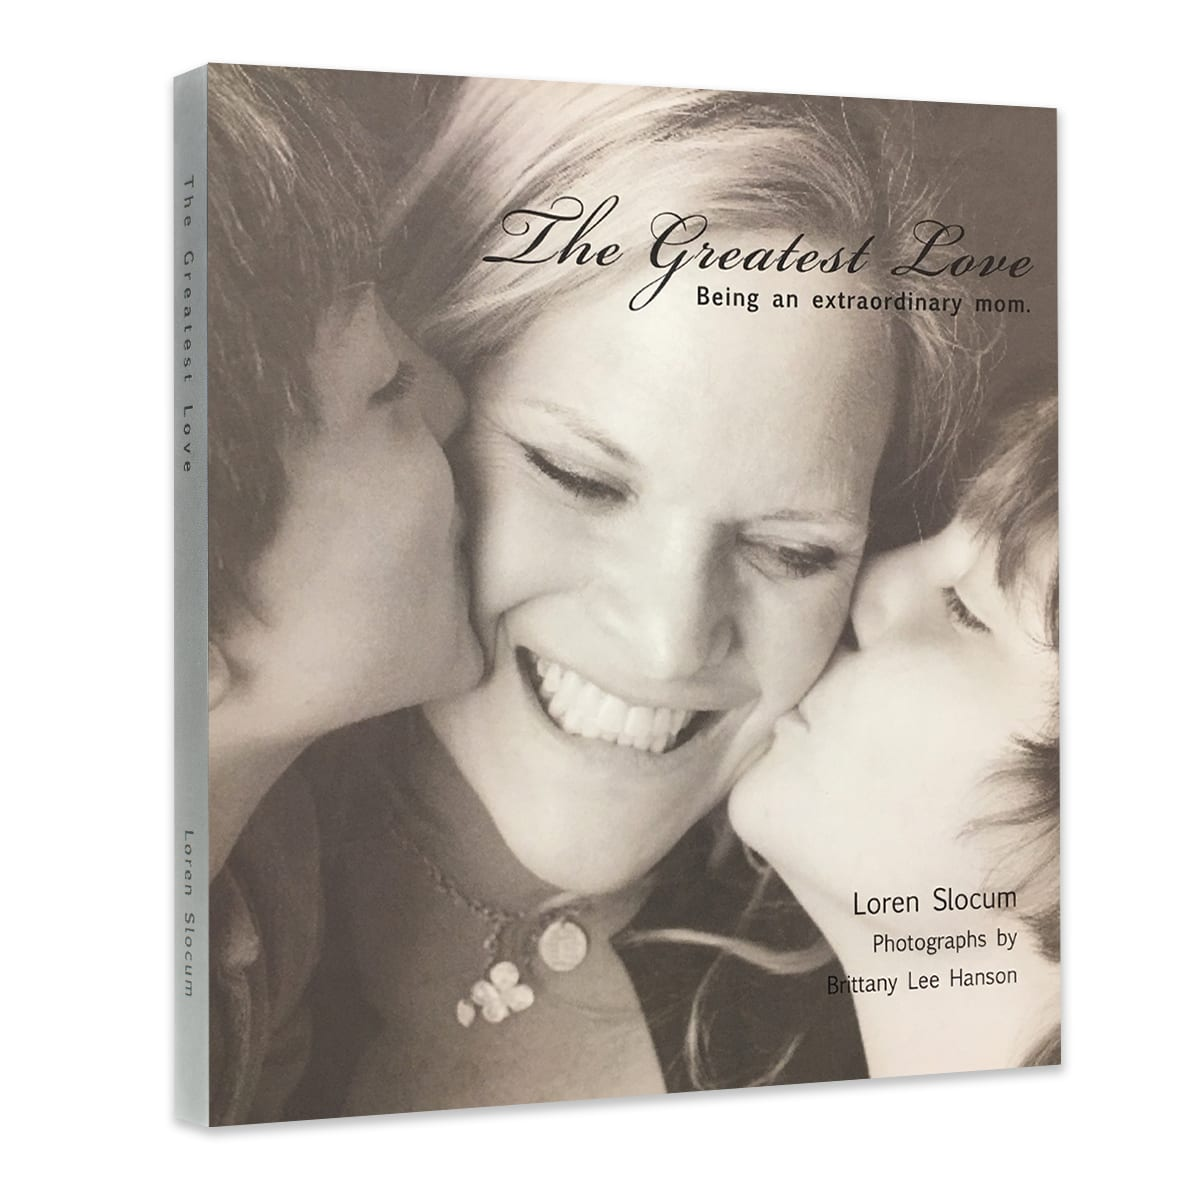 The Greatest Love – Being an Extraordinary Mom